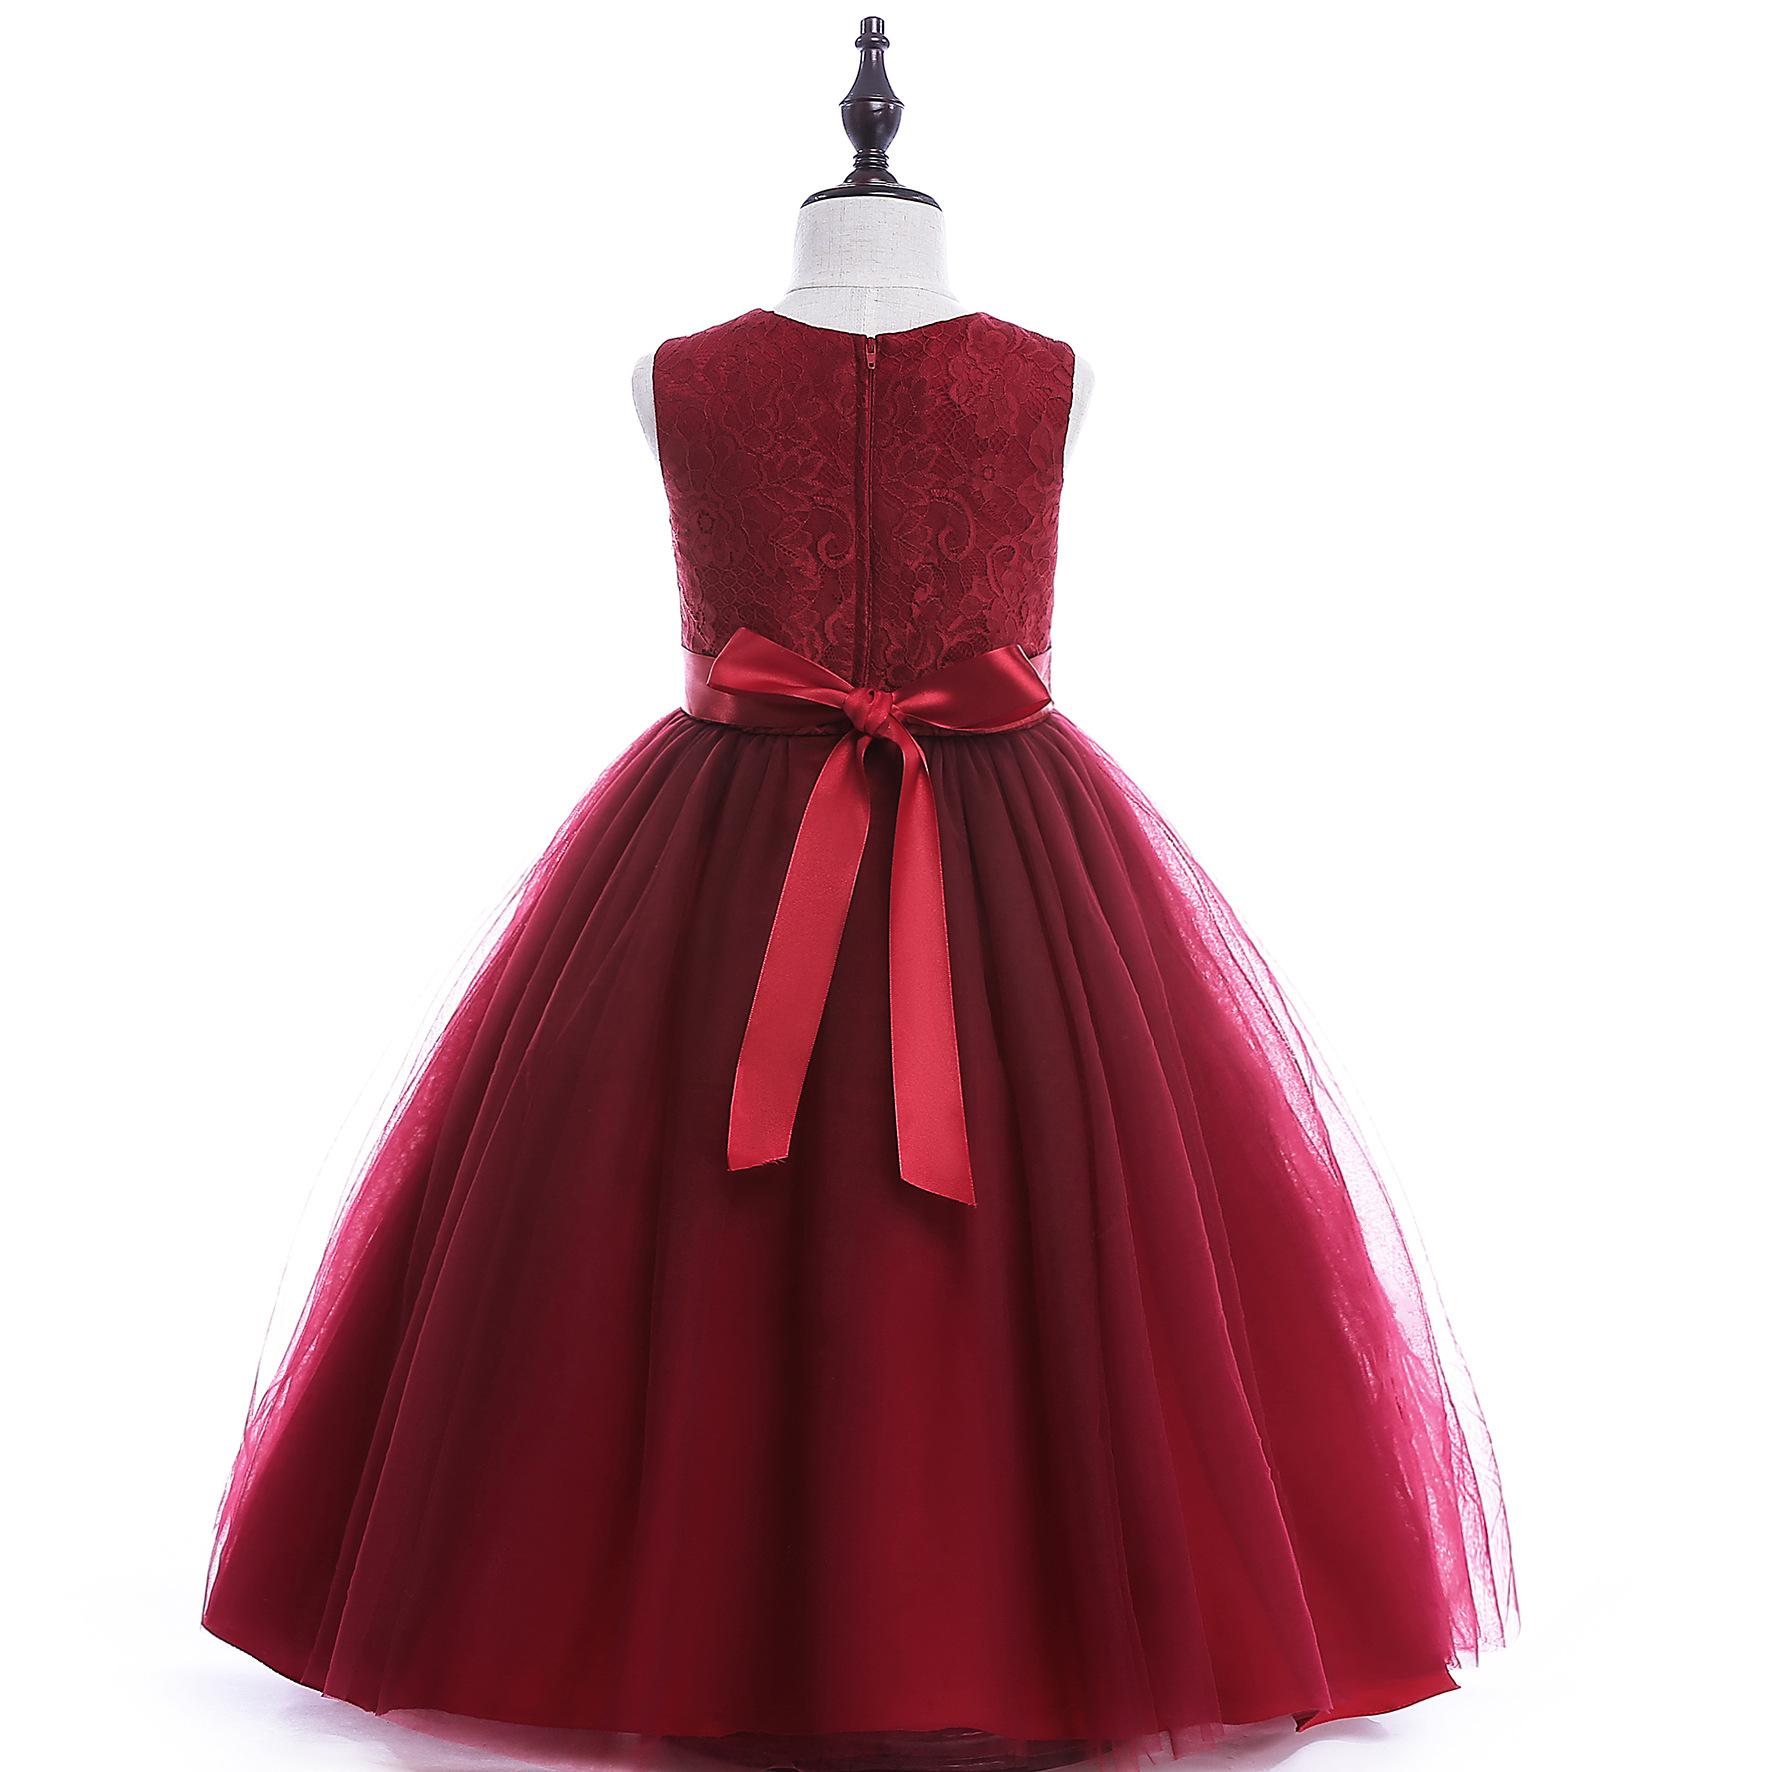 12c5c56a67ac1 US $24.51 18% OFF|POSH DREAM Burgundy Party Dresses for Kids Girl Lace  Tulle Flower Girl Wedding Costume Dress Peach Kids Girl Summer Party  Dress-in ...